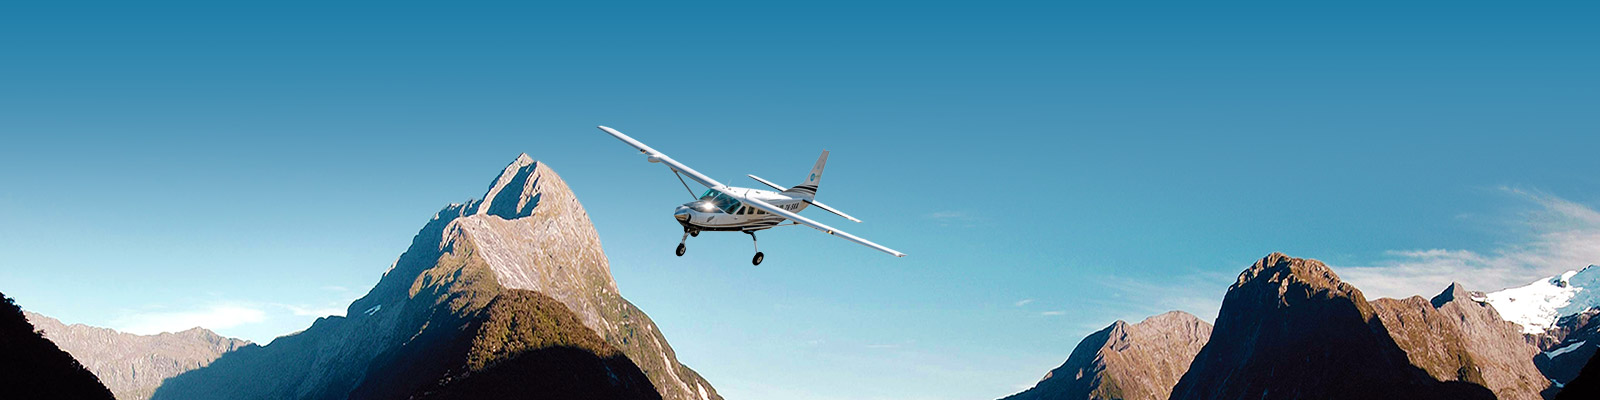 Milford Sound Scenic Flight & Five Glaciers Deal